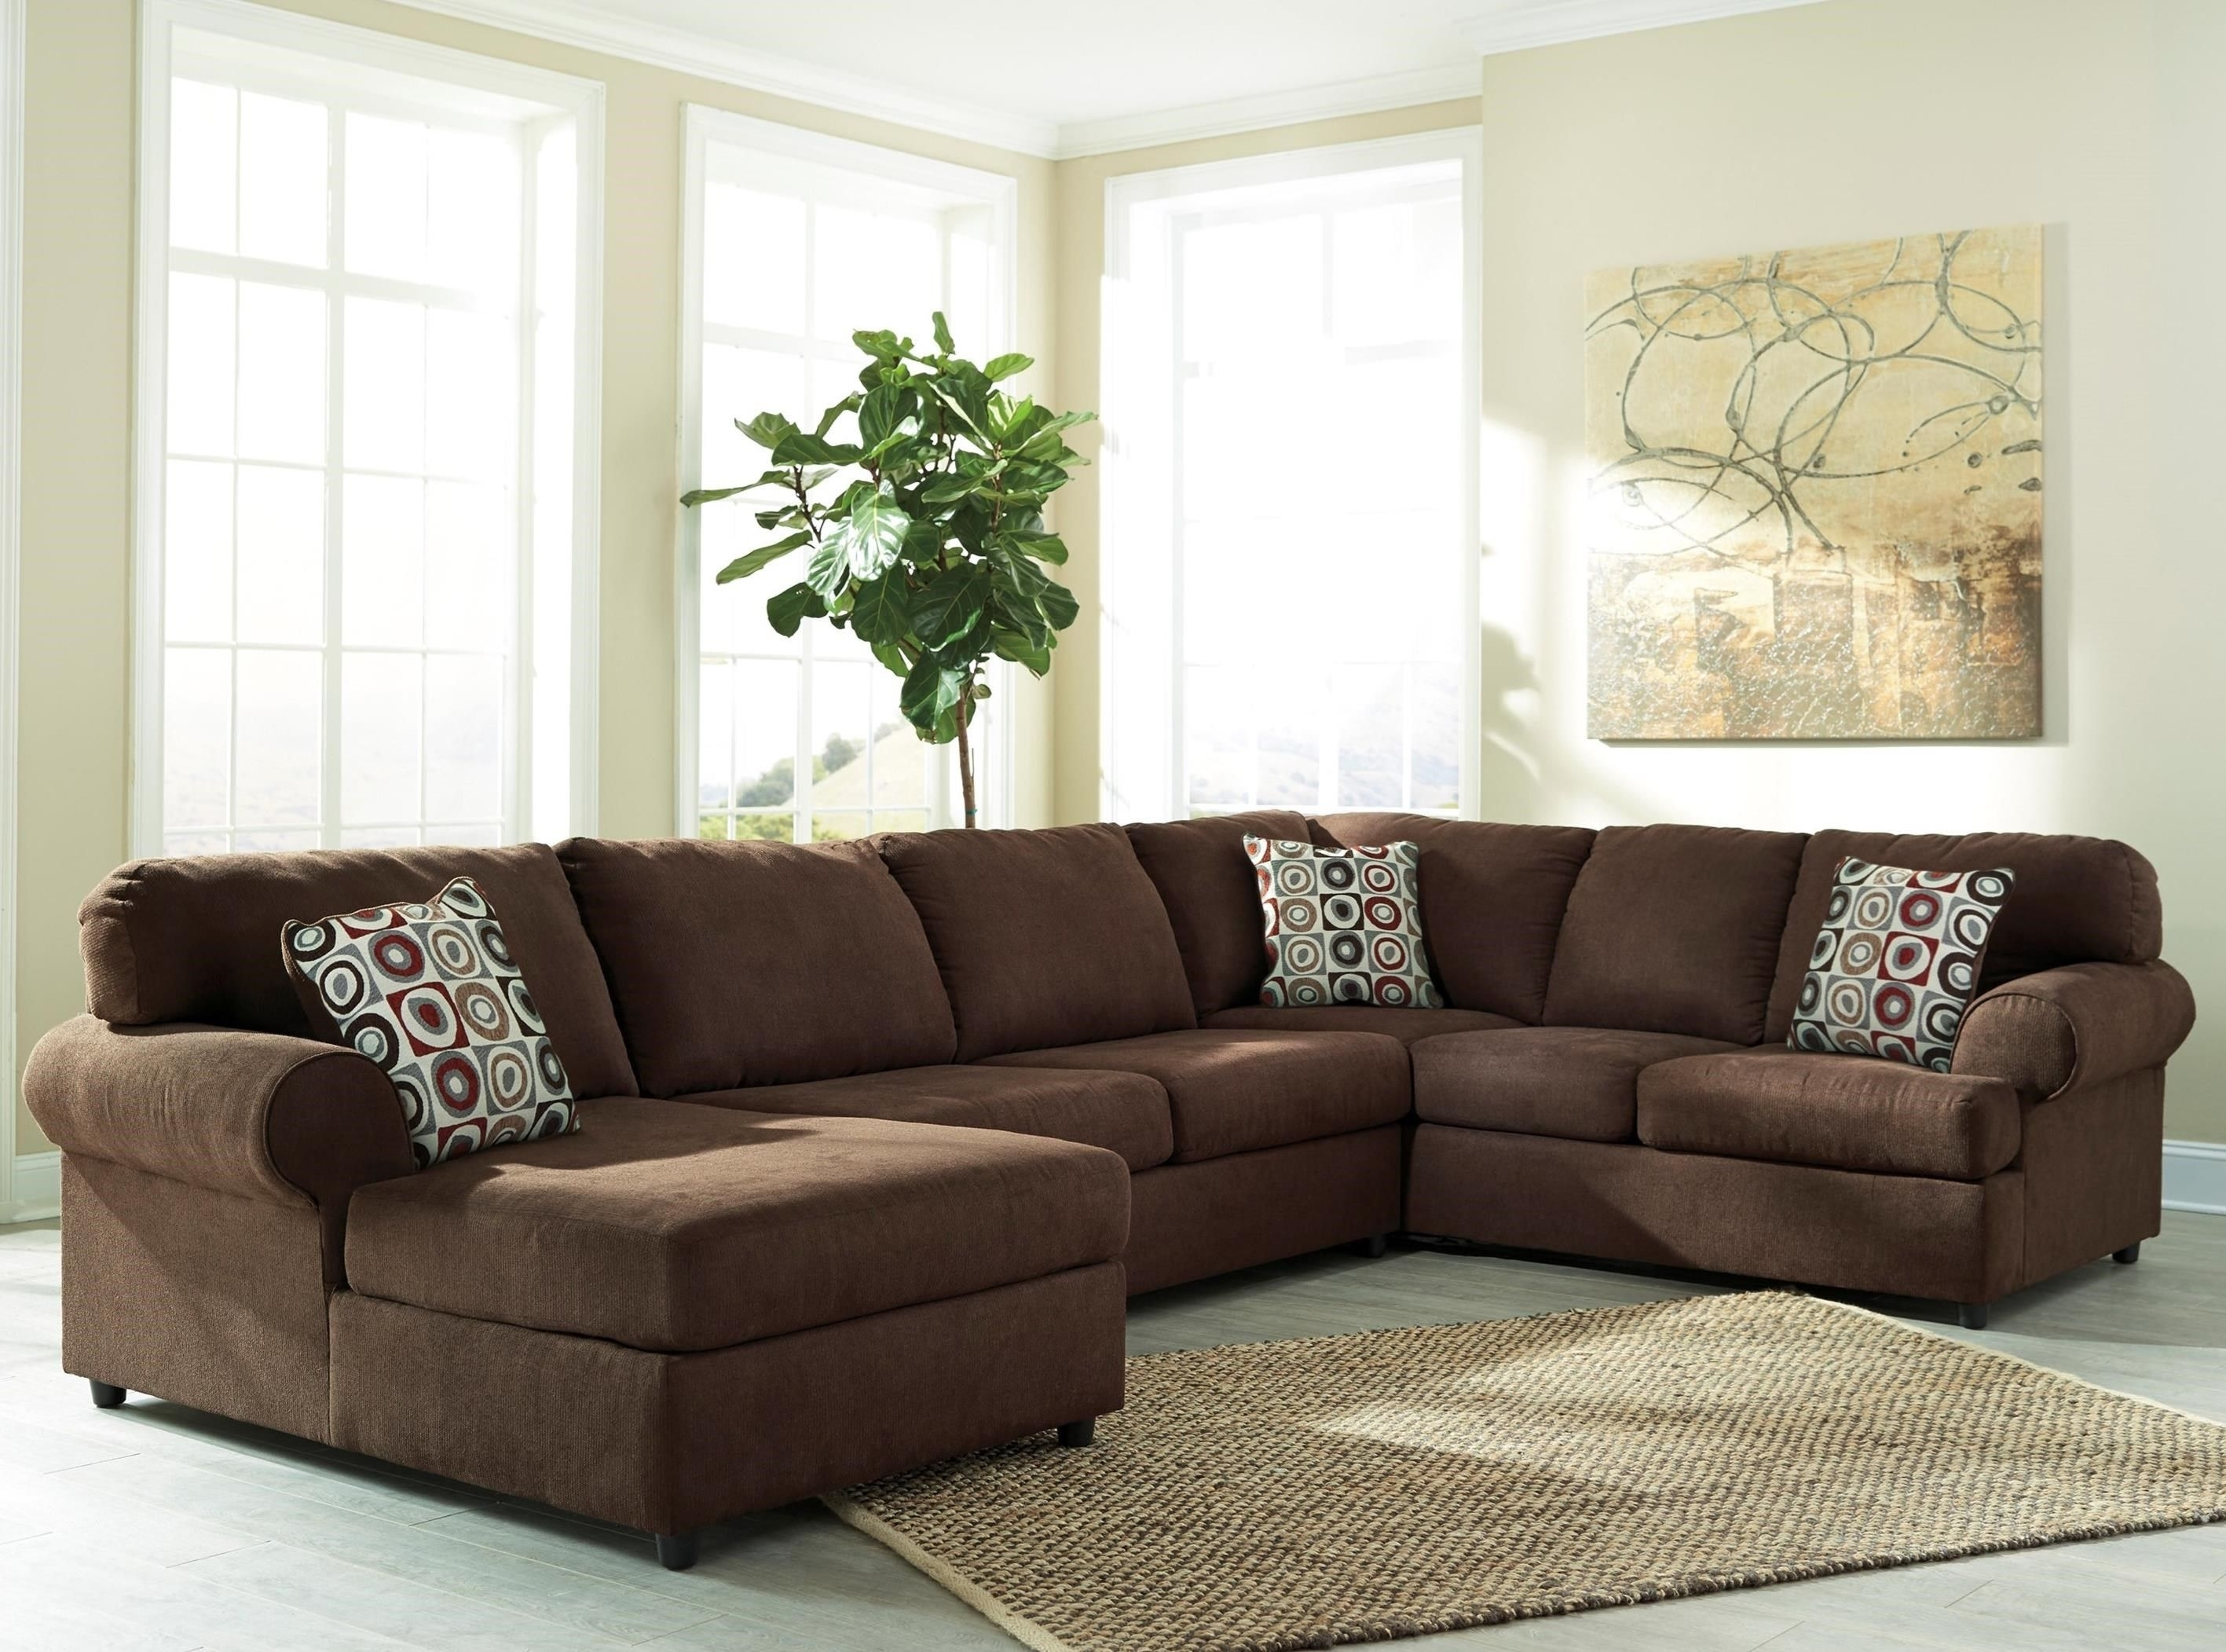 Jayceon Steel 3 Pc Laf Corner Chaise Sectional T within Malbry Point 3 Piece Sectionals With Laf Chaise